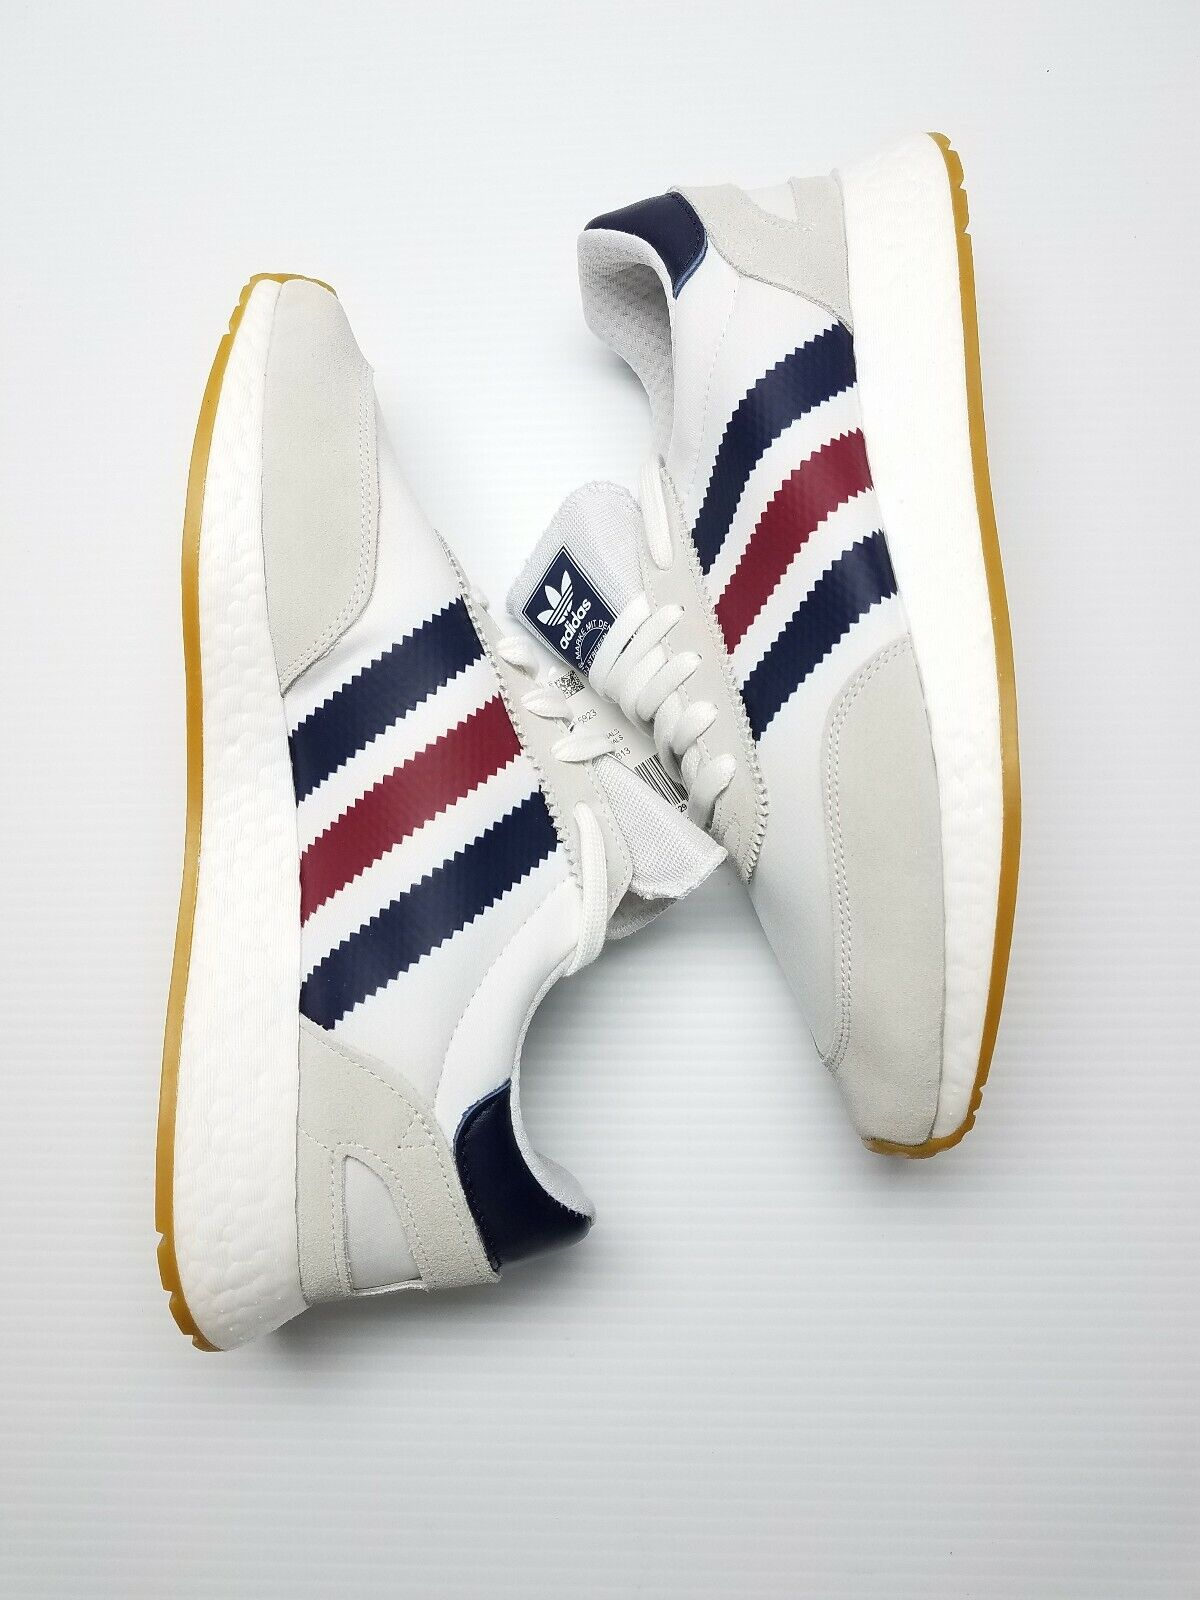 new product get online catch adidas I-5923 Iniki Boost Men's Running Shoes Size 11 White Bd7814 Retail